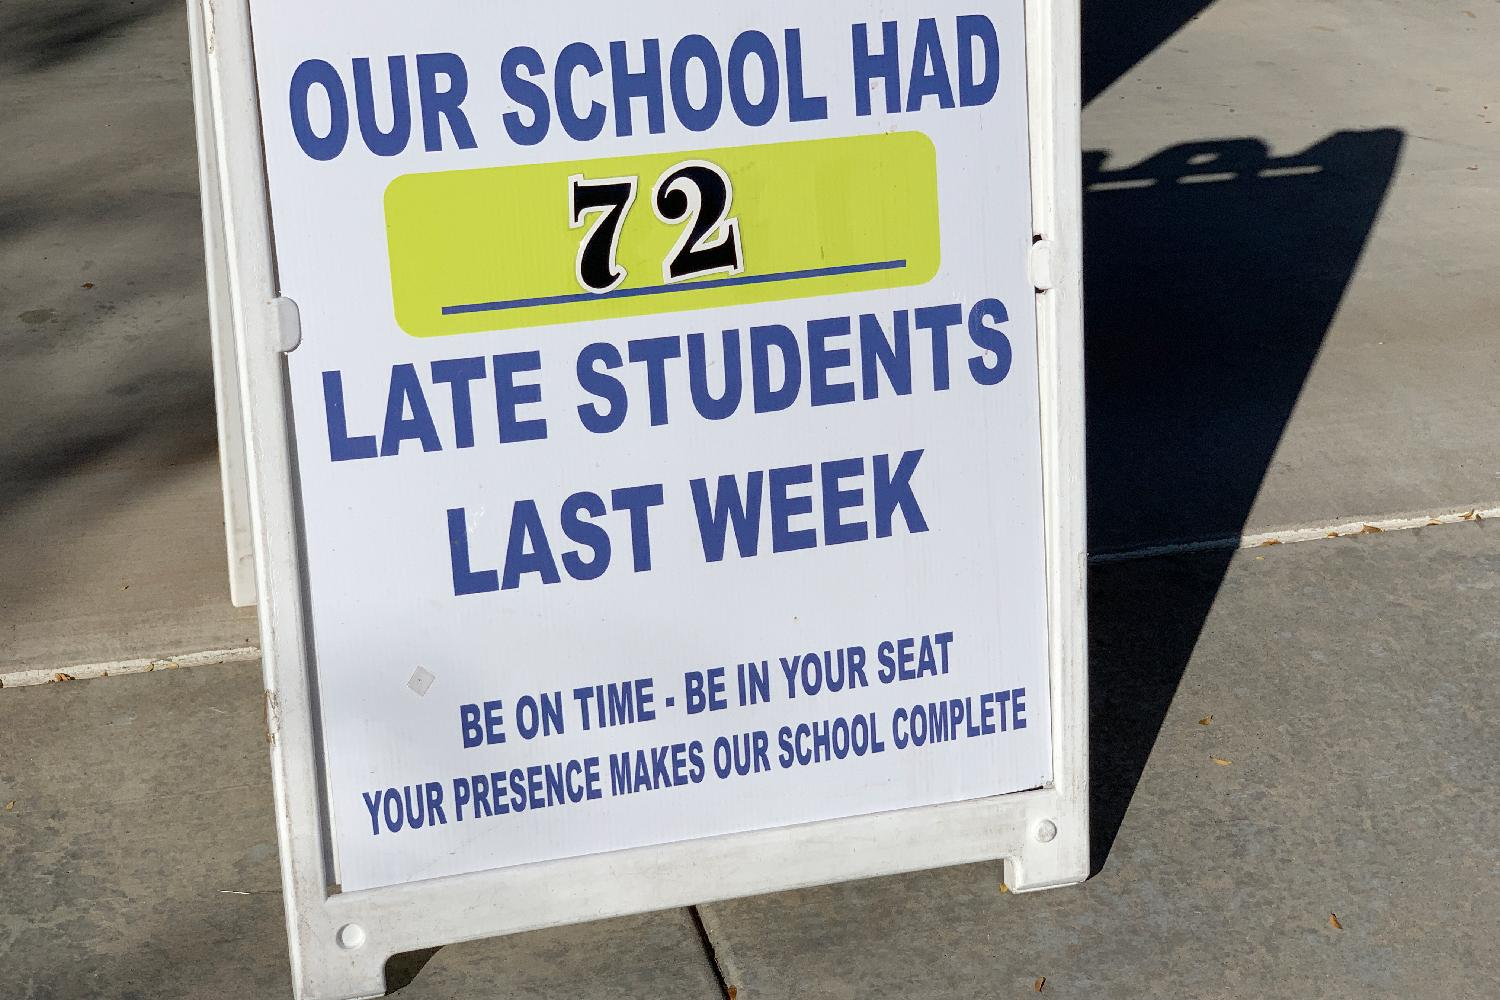 Late for school tardy students sign